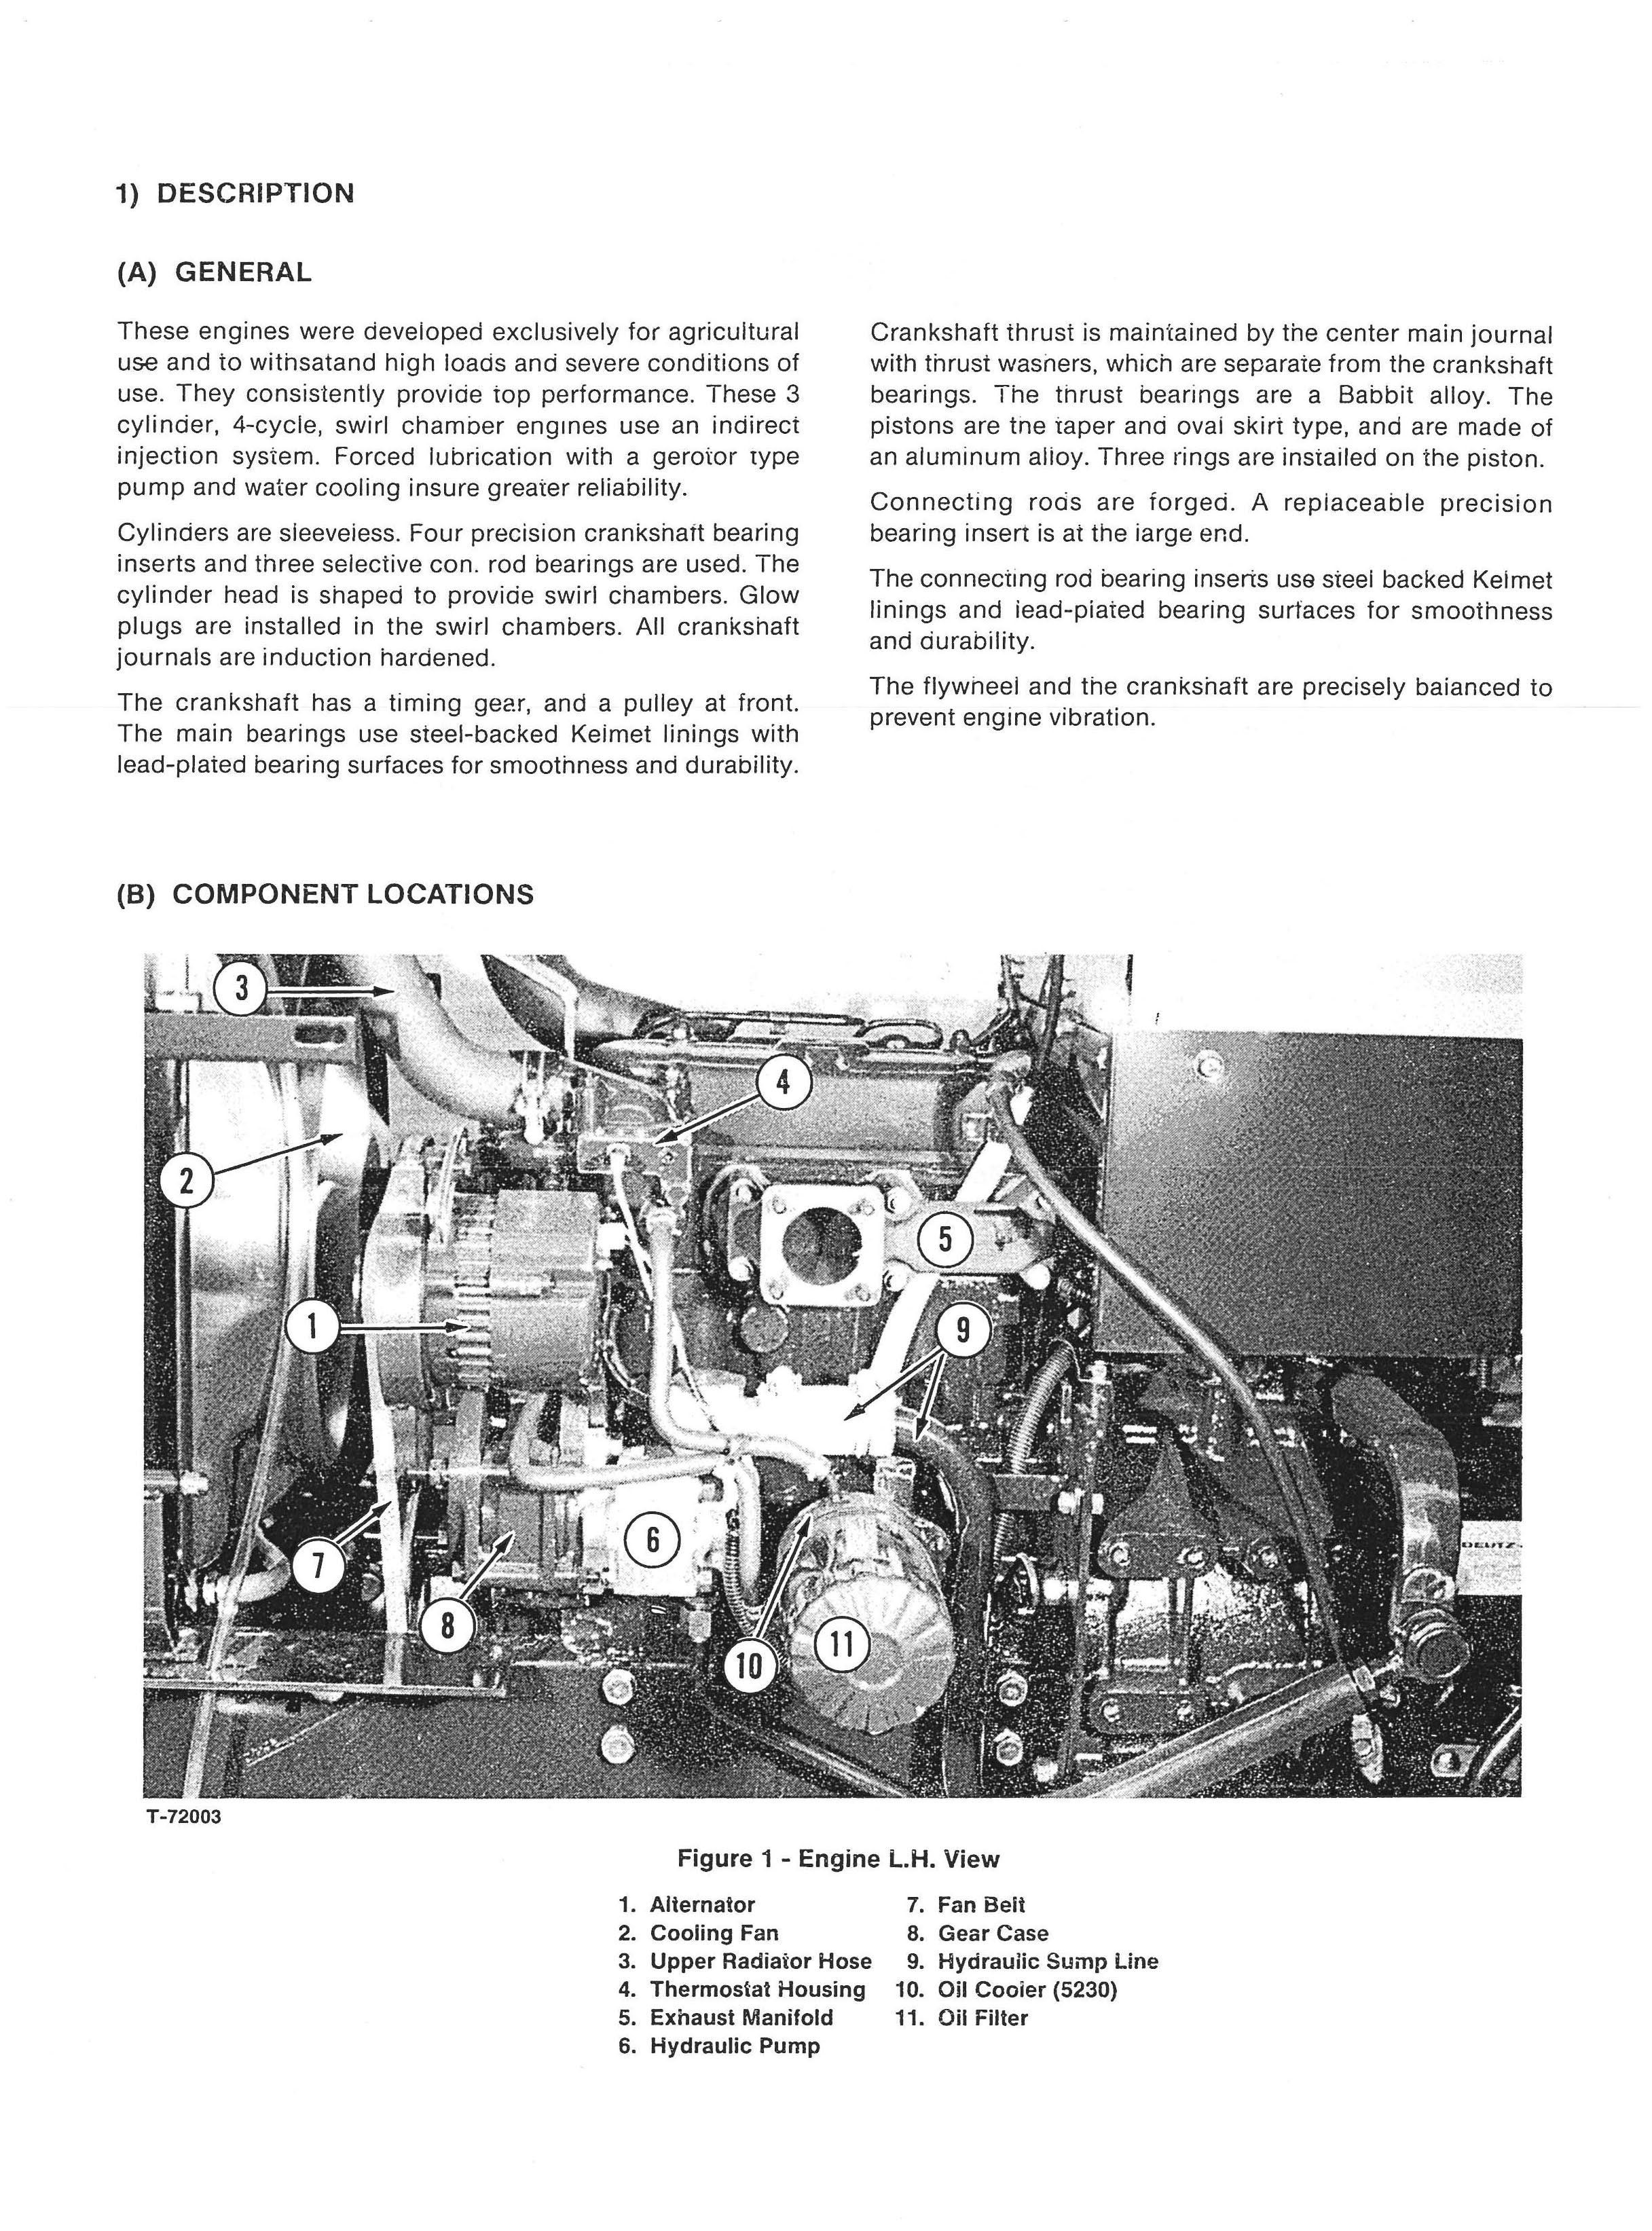 Deutz Allis 1920 Wiring Diagram Flovent Coupon Cvs Ultima Motor D8006 Tractor Service Manual Unknown Bindingtwo Hp Sizes Model 1918 With 18 And 20